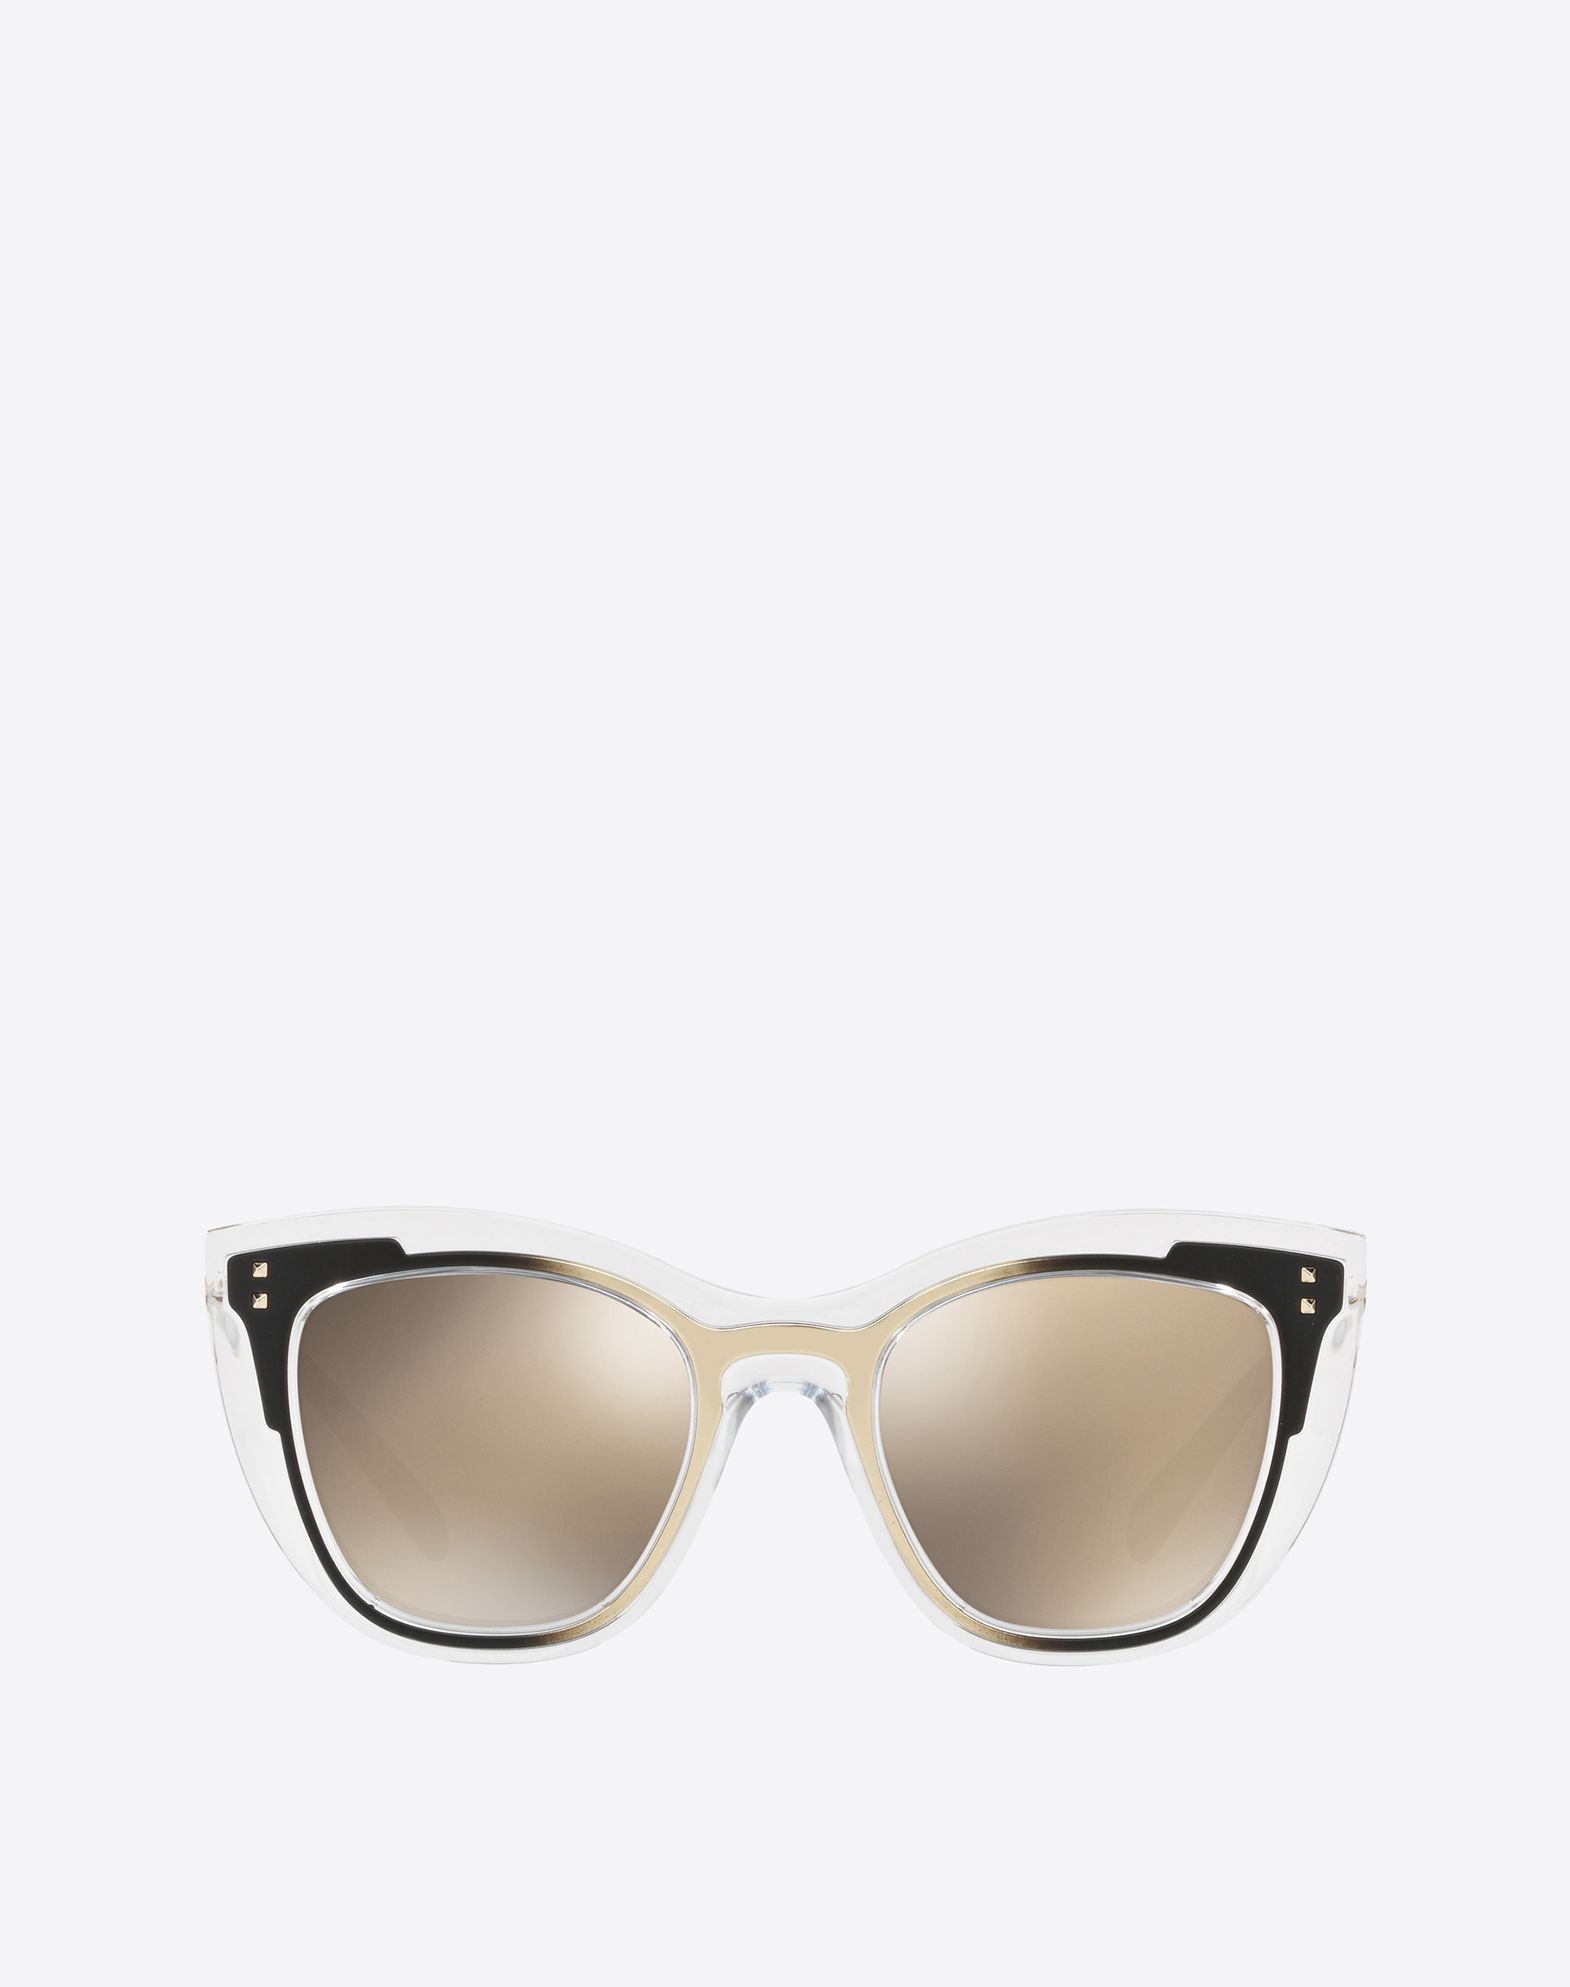 TWO-TONE PEAKED SQUARE FRAME ACETATE SUNGLASSES